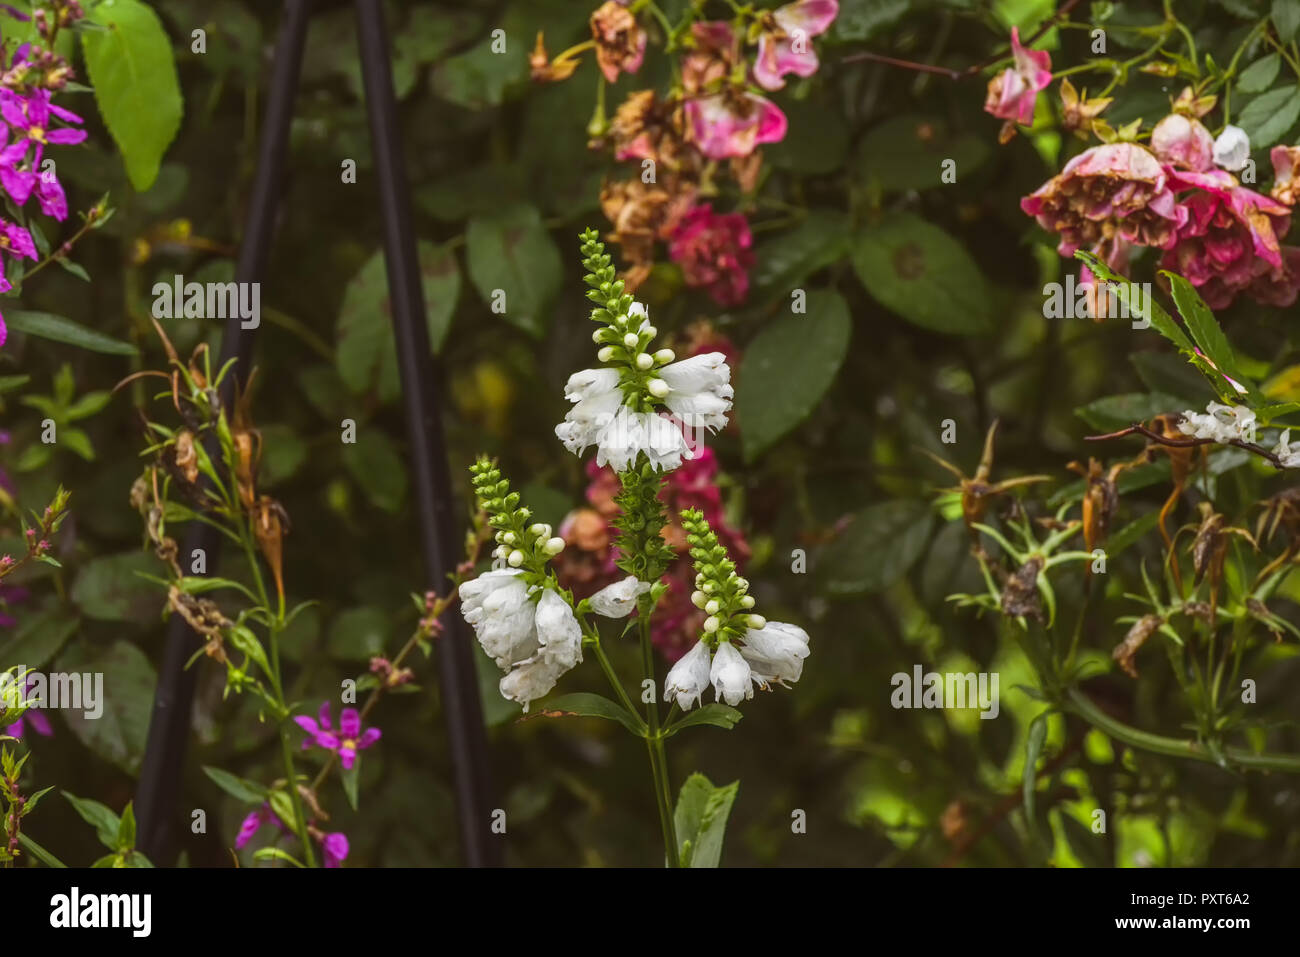 Colorful outdoor image of three blossoms of a green white false  dragonhead/obedient/obedience plant in front of a rose hedge with fading flowers - Stock Image